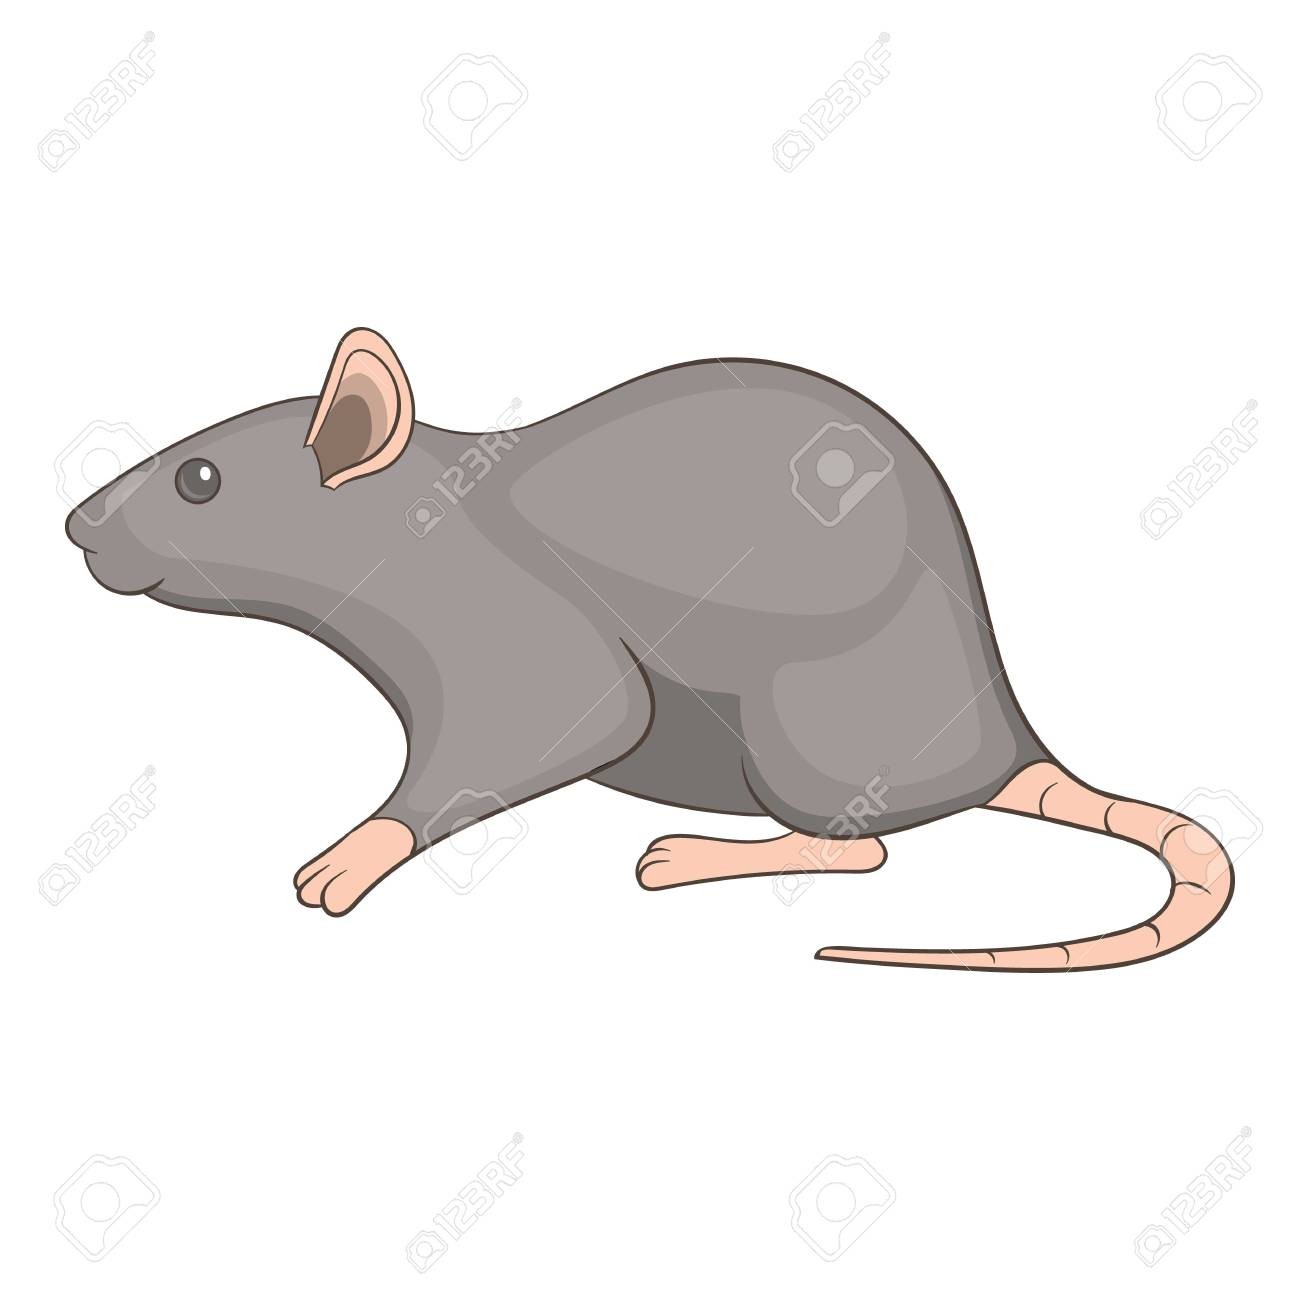 rat icon cartoon illustration of rat vector icon for web royalty free cliparts vectors and stock illustration image 69782781 rat icon cartoon illustration of rat vector icon for web